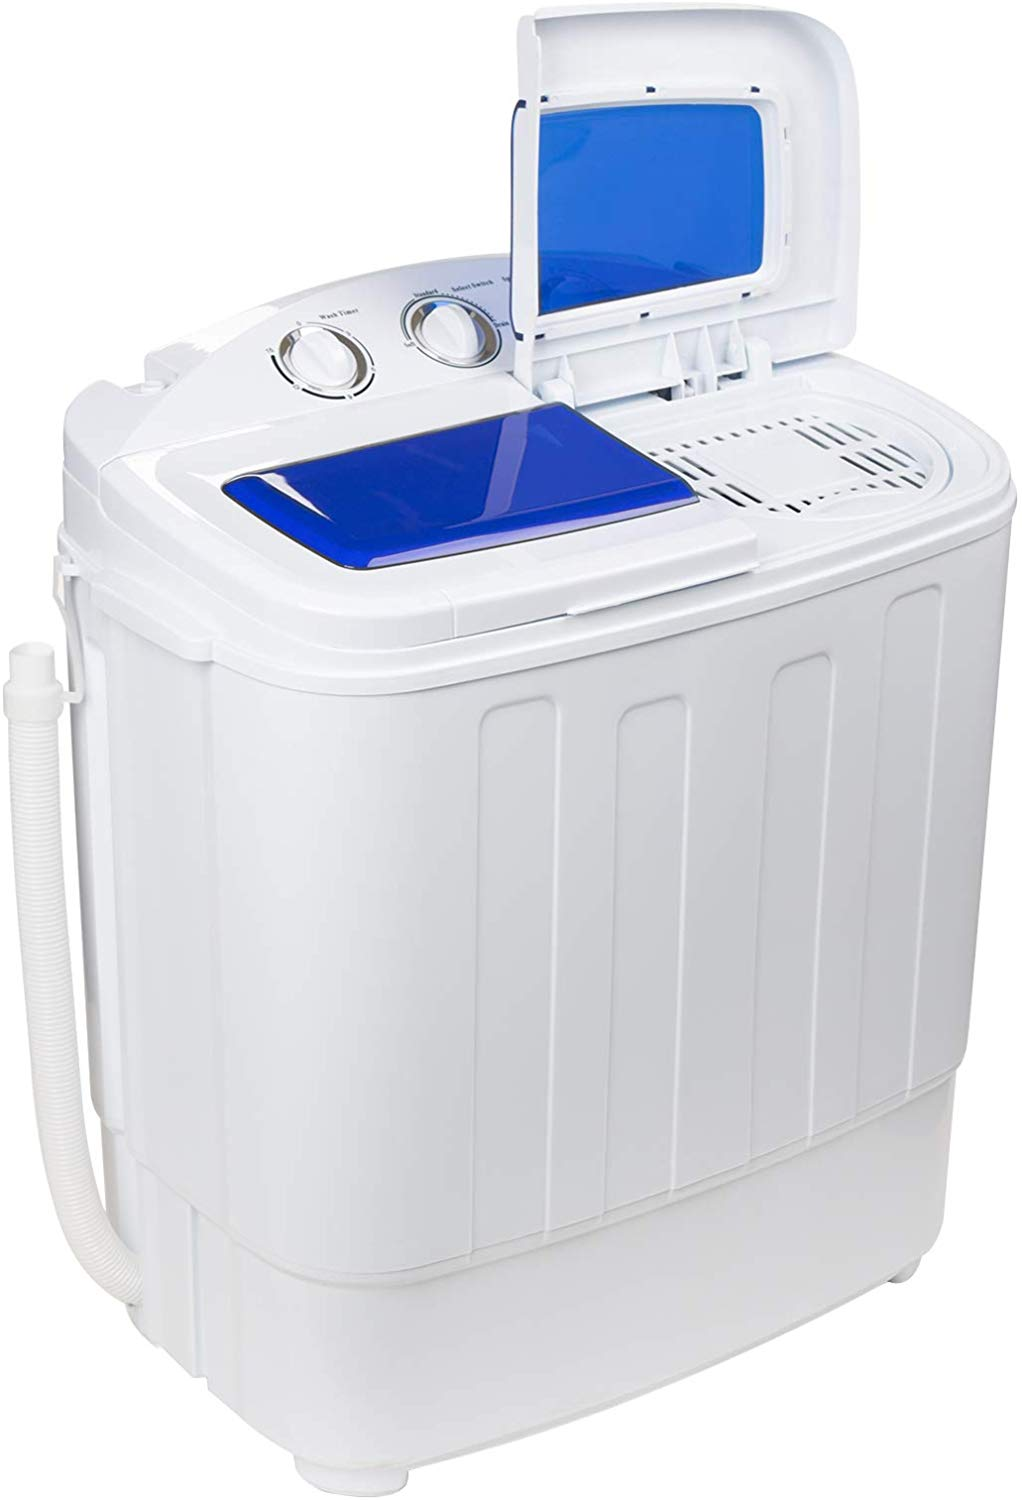 Display4top Double-Tub Washer